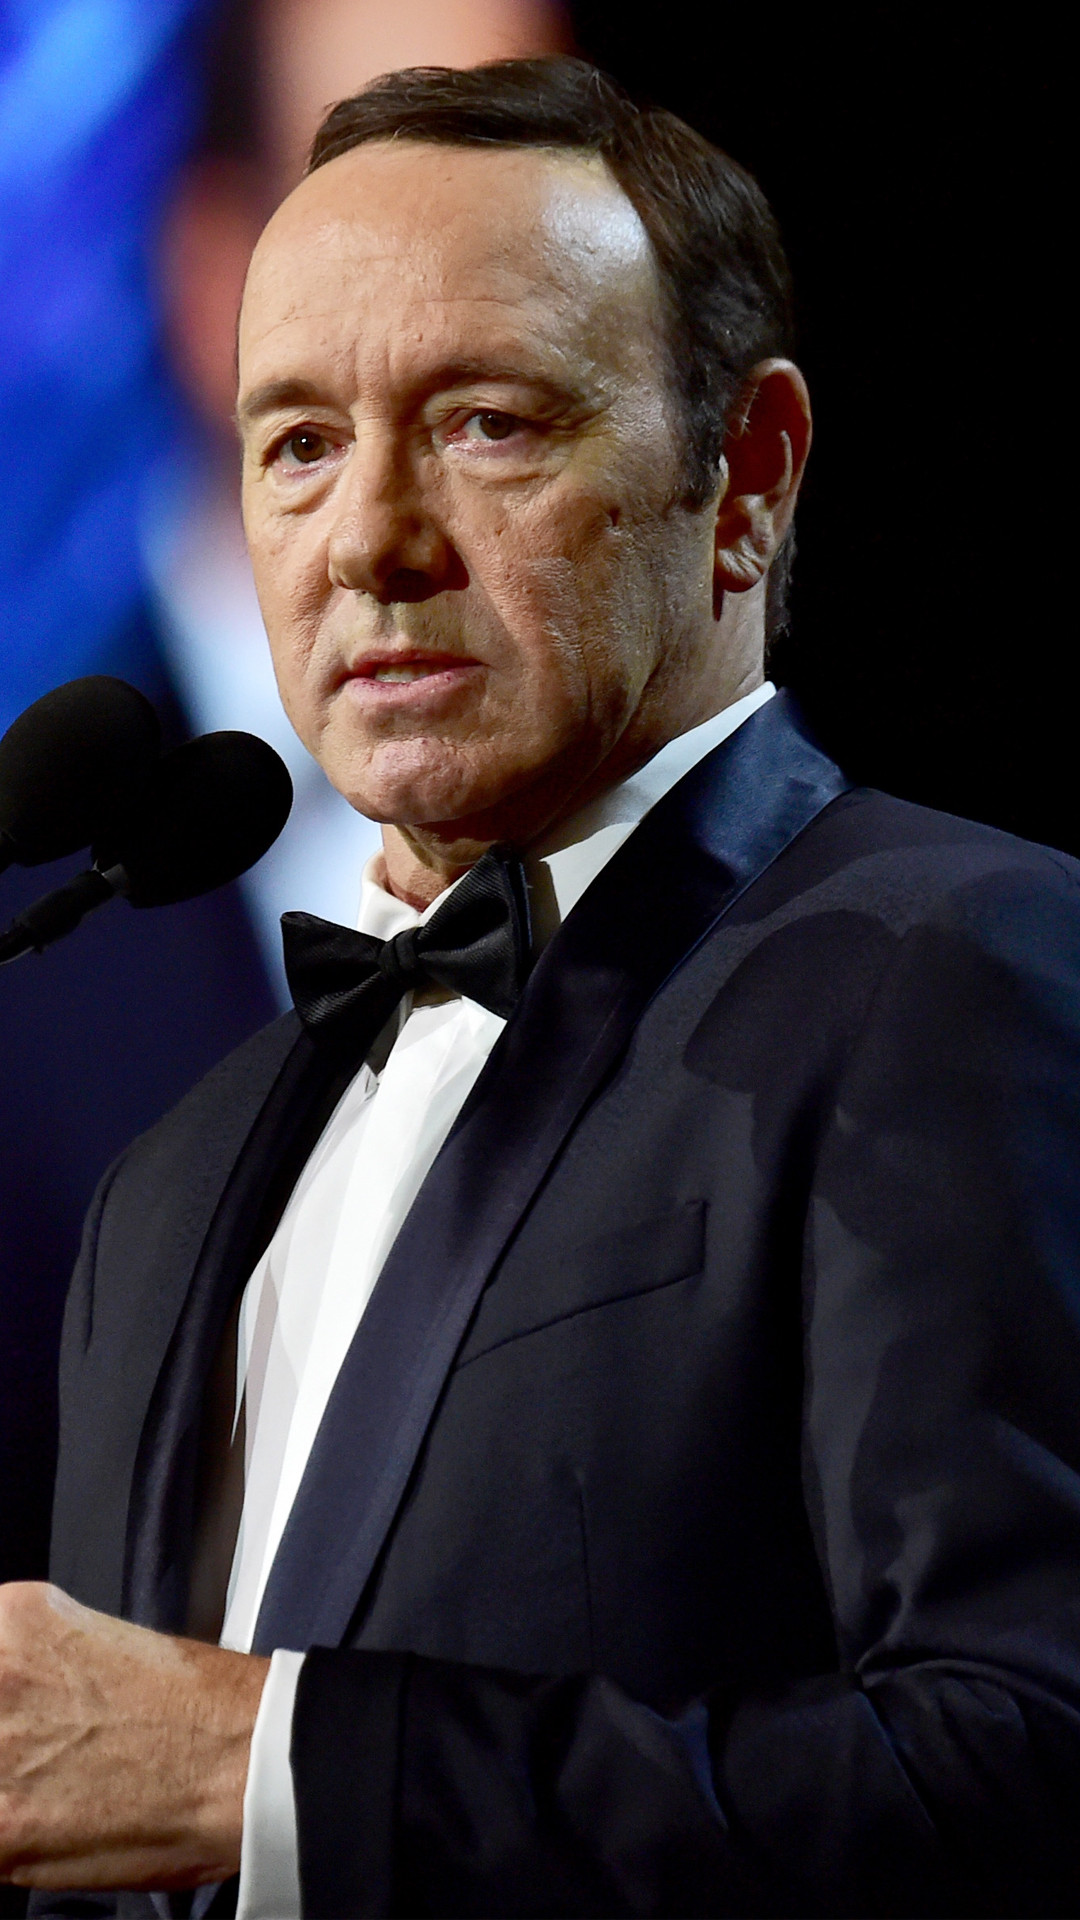 kevin spacey 21